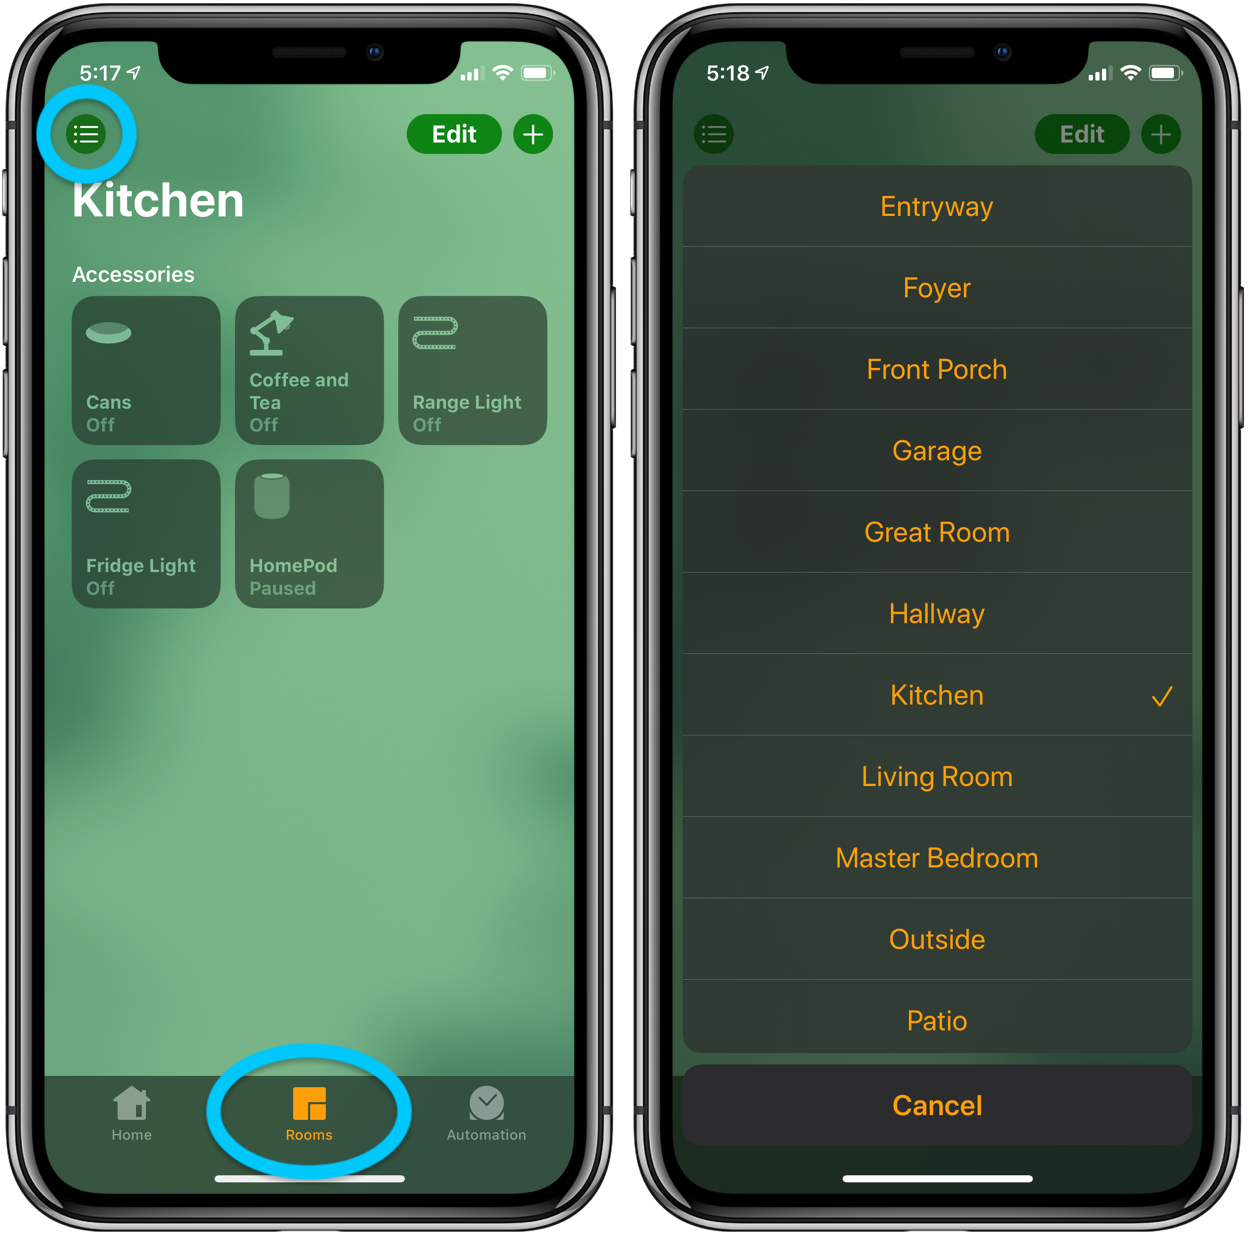 How to add/remove favorite HomeKit accessories